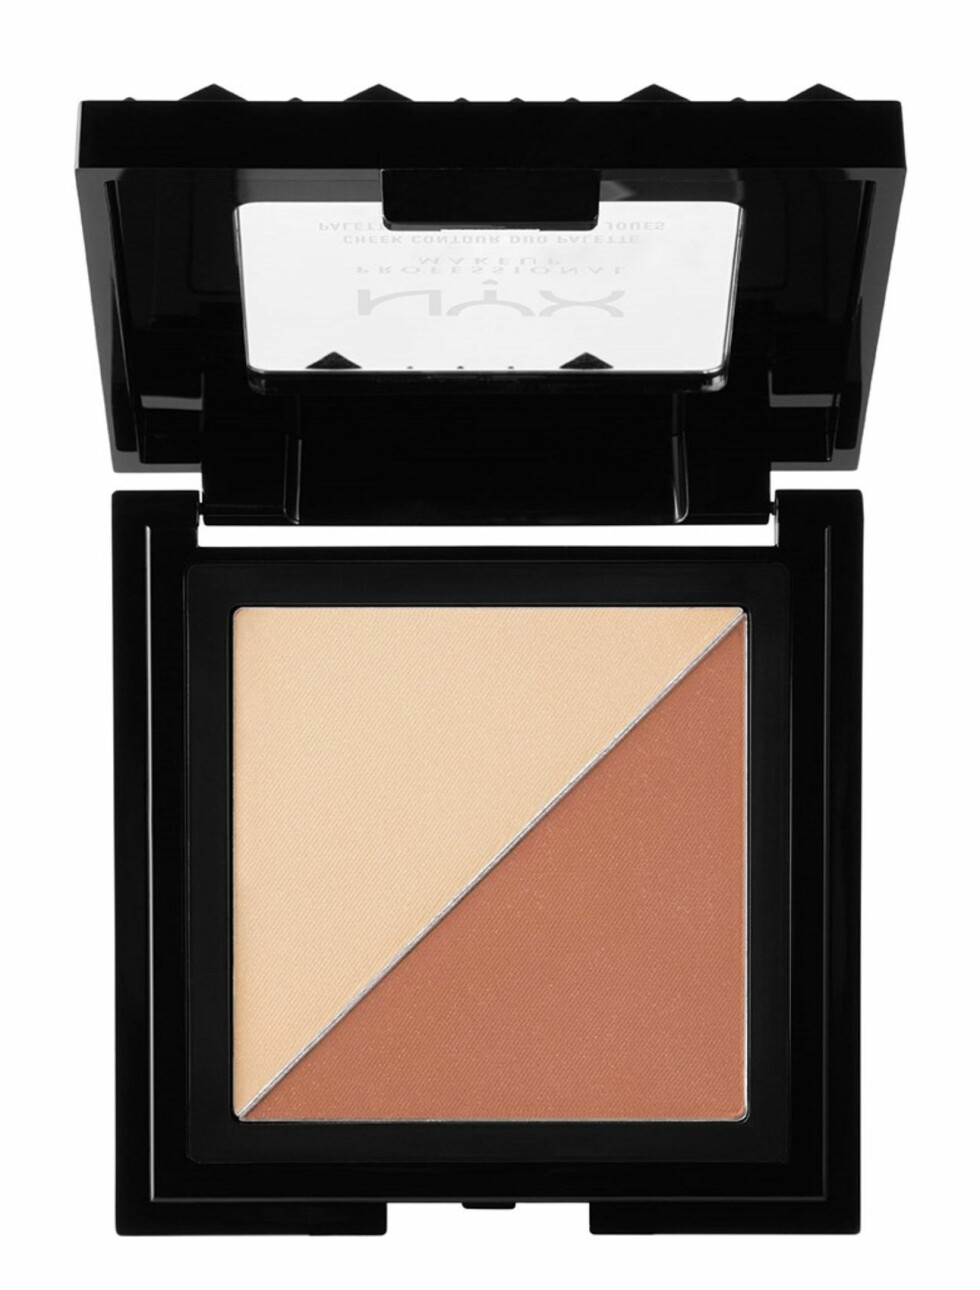 Contourpalett fra NYX  99,-  https://www.boozt.com/no/no/nyx-professionel-makeup/cheek-contour-duo-palet_16175667/16175952?navId=67599&group=listing&position=1400000